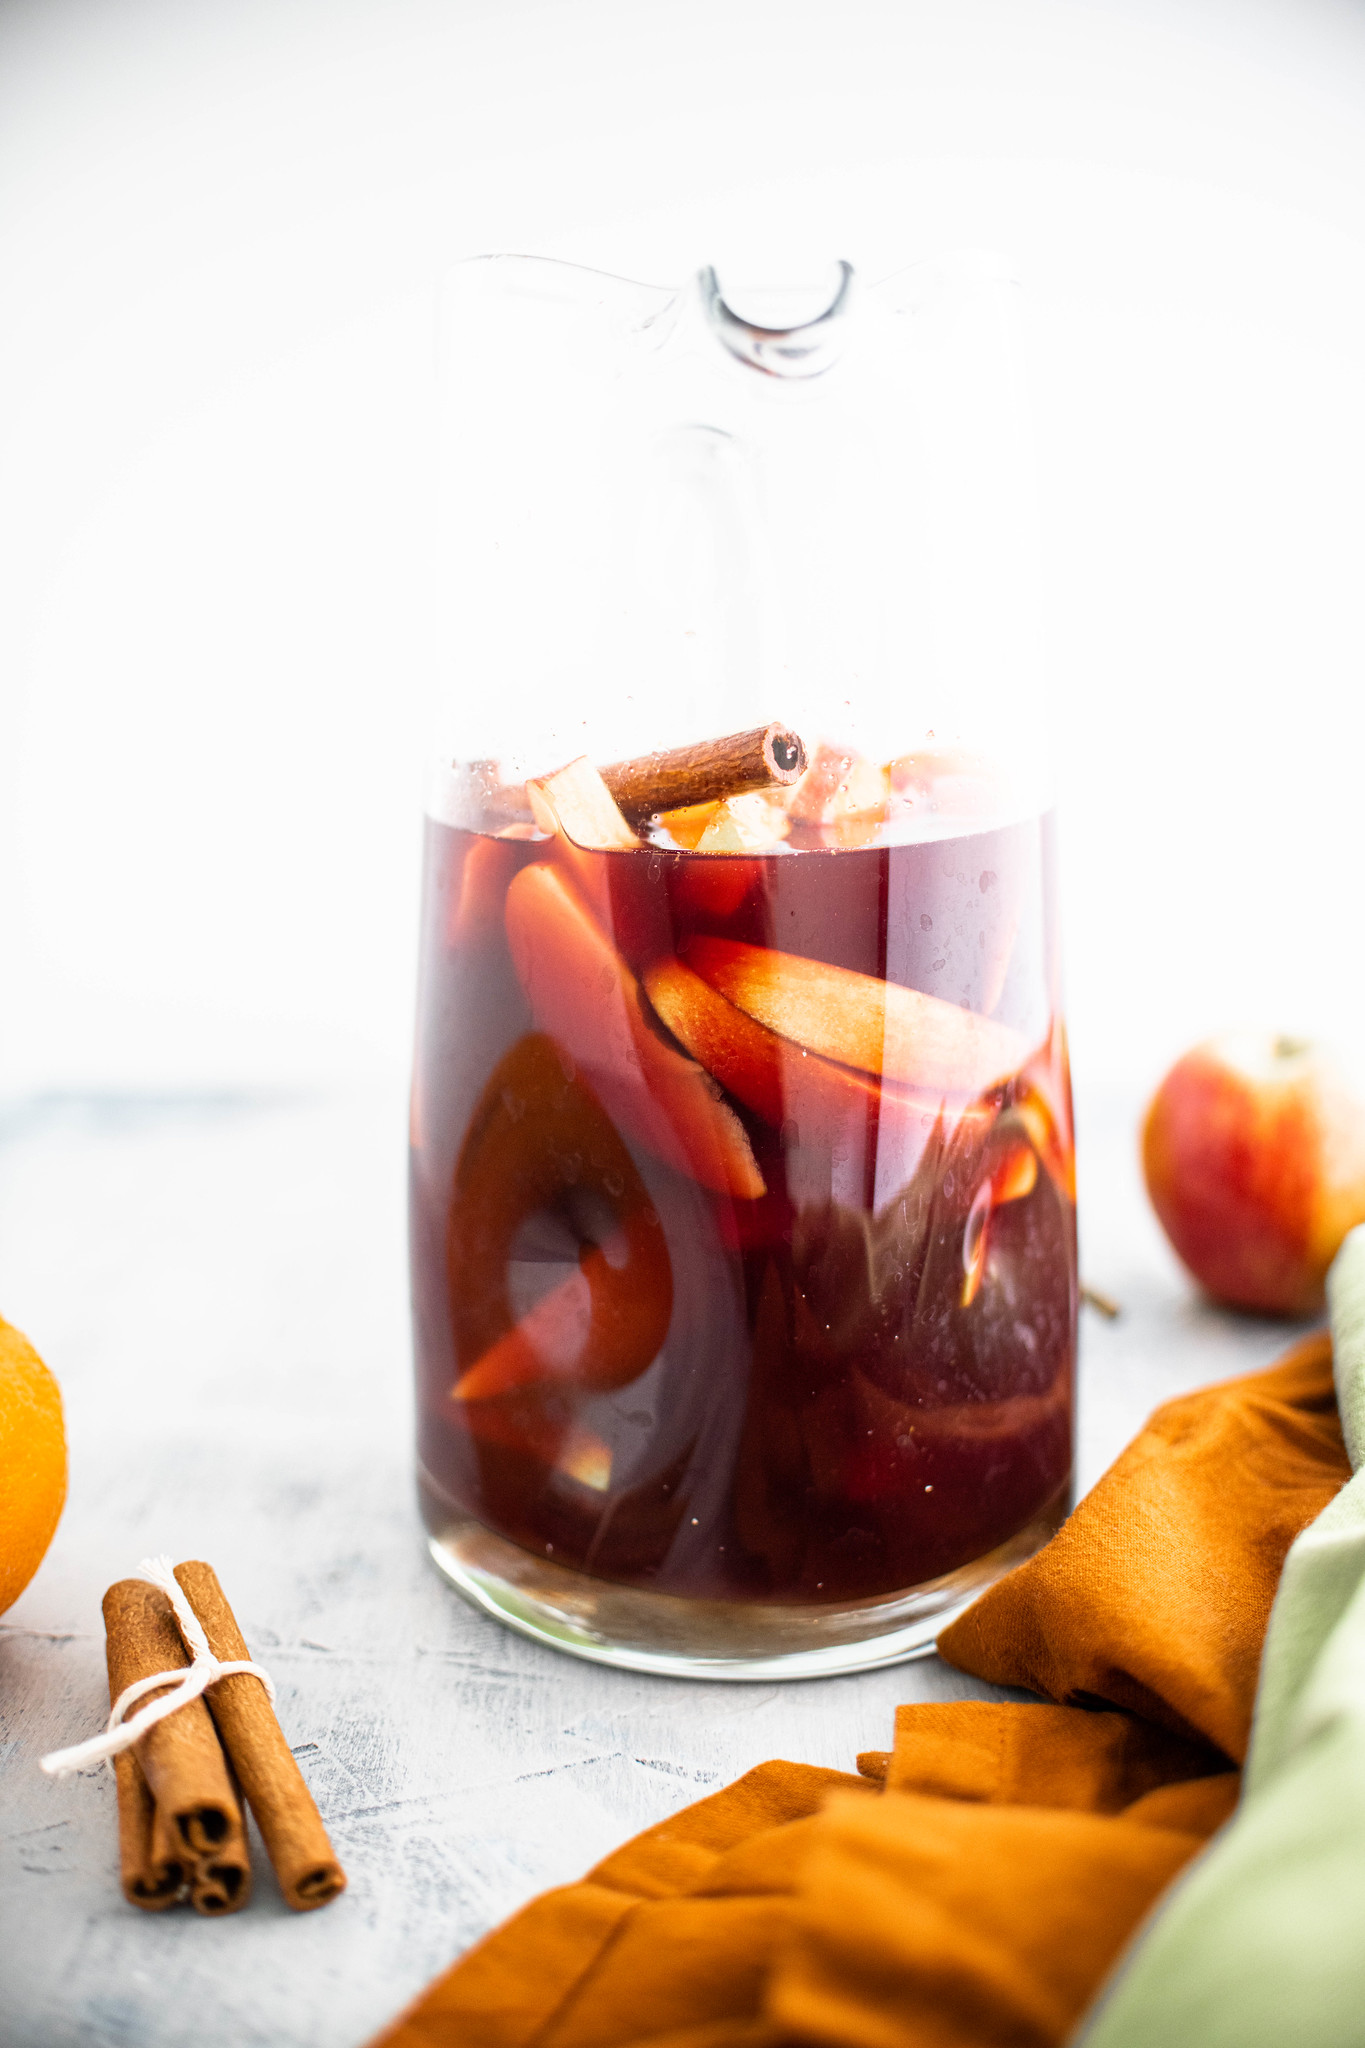 Straight on shot of pitcher of fall red sangria with cinnamon stick, apples, oranges and pears. Bundle of cinnamon sticks in upper left corner.